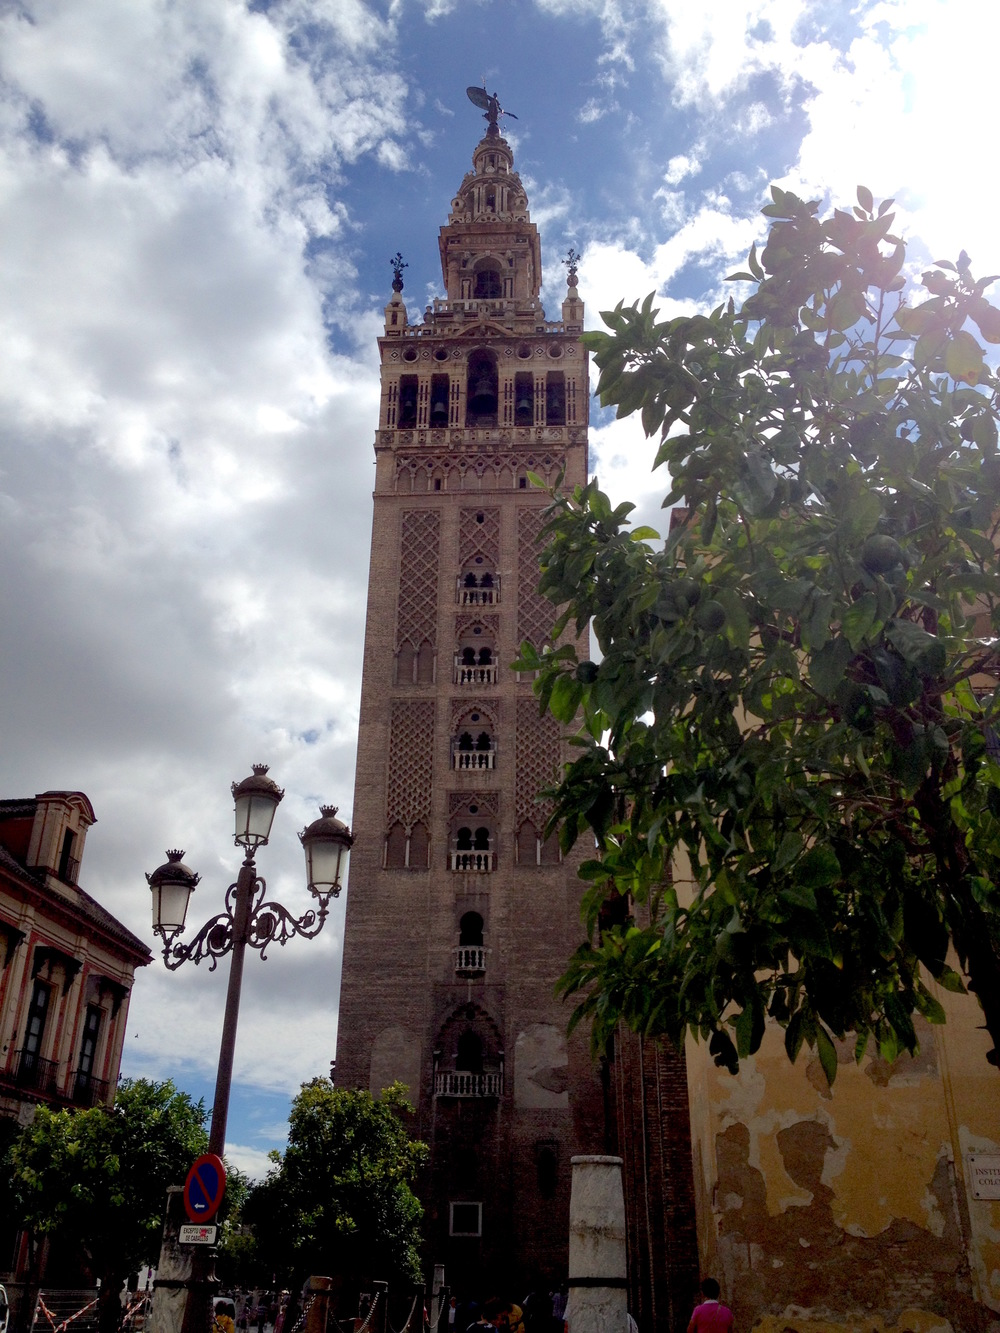 Giralda Tower in Seville, Spain